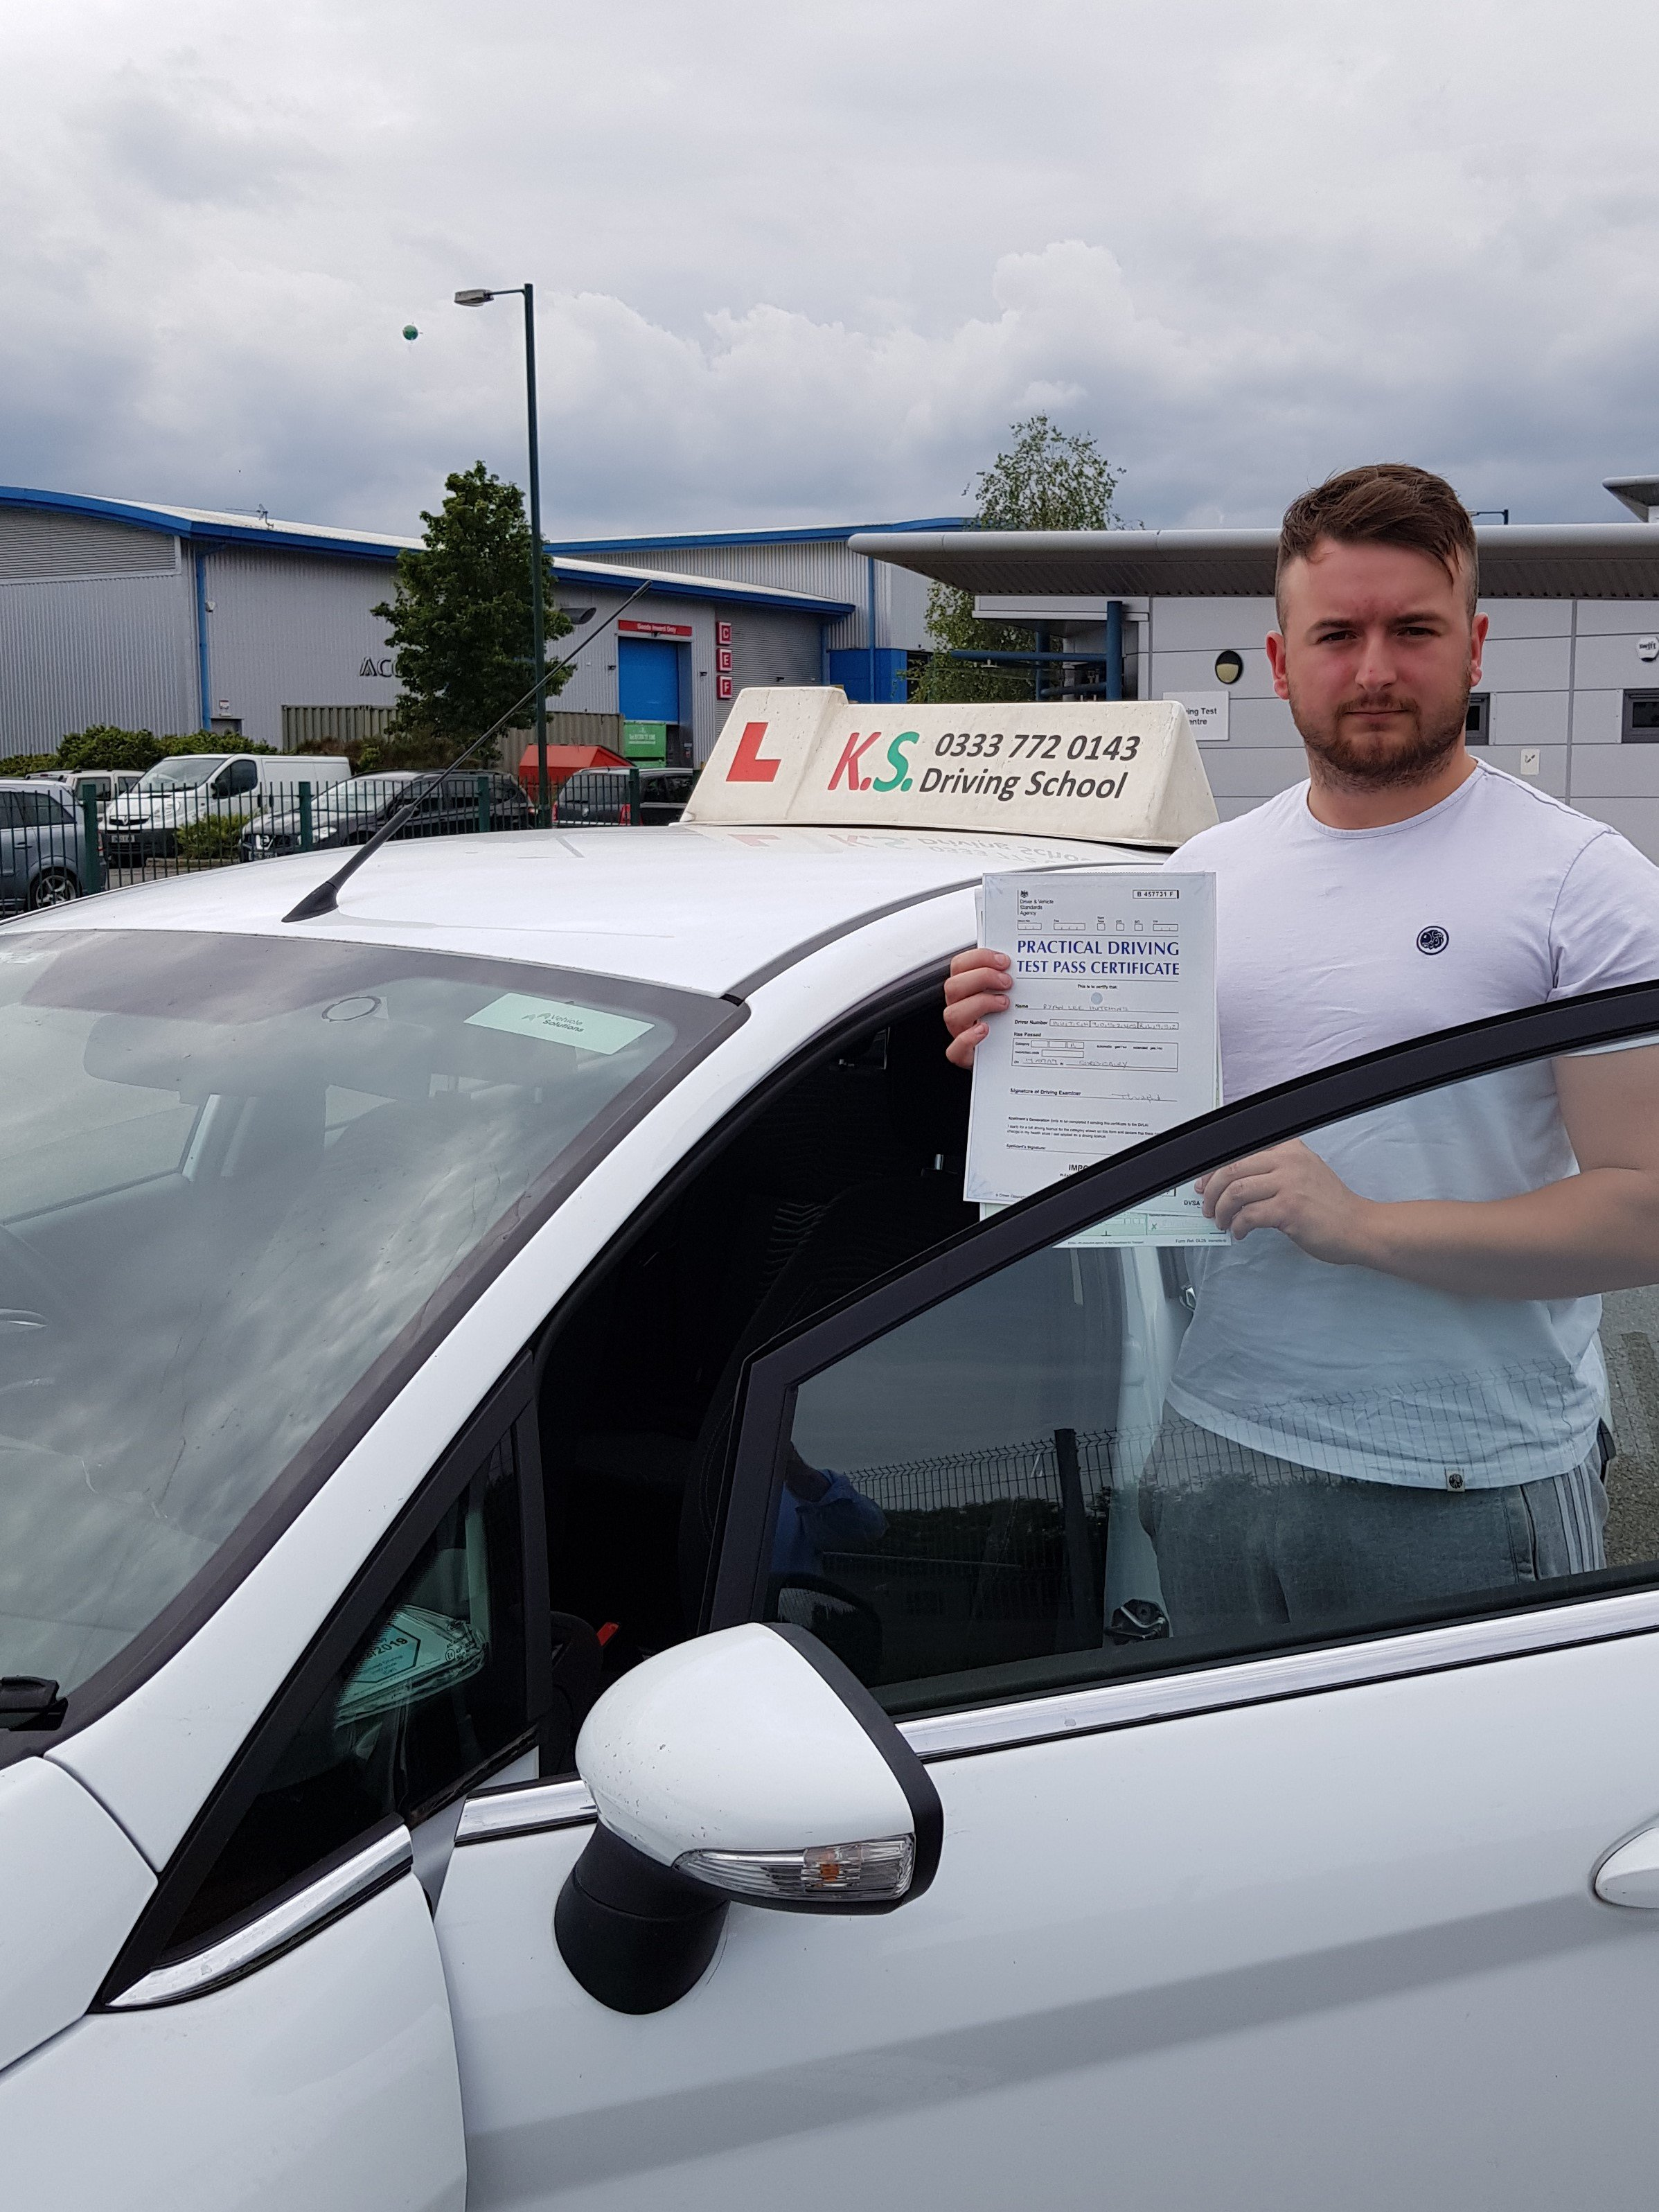 riving Test Pass 17th July in Shrewsbury